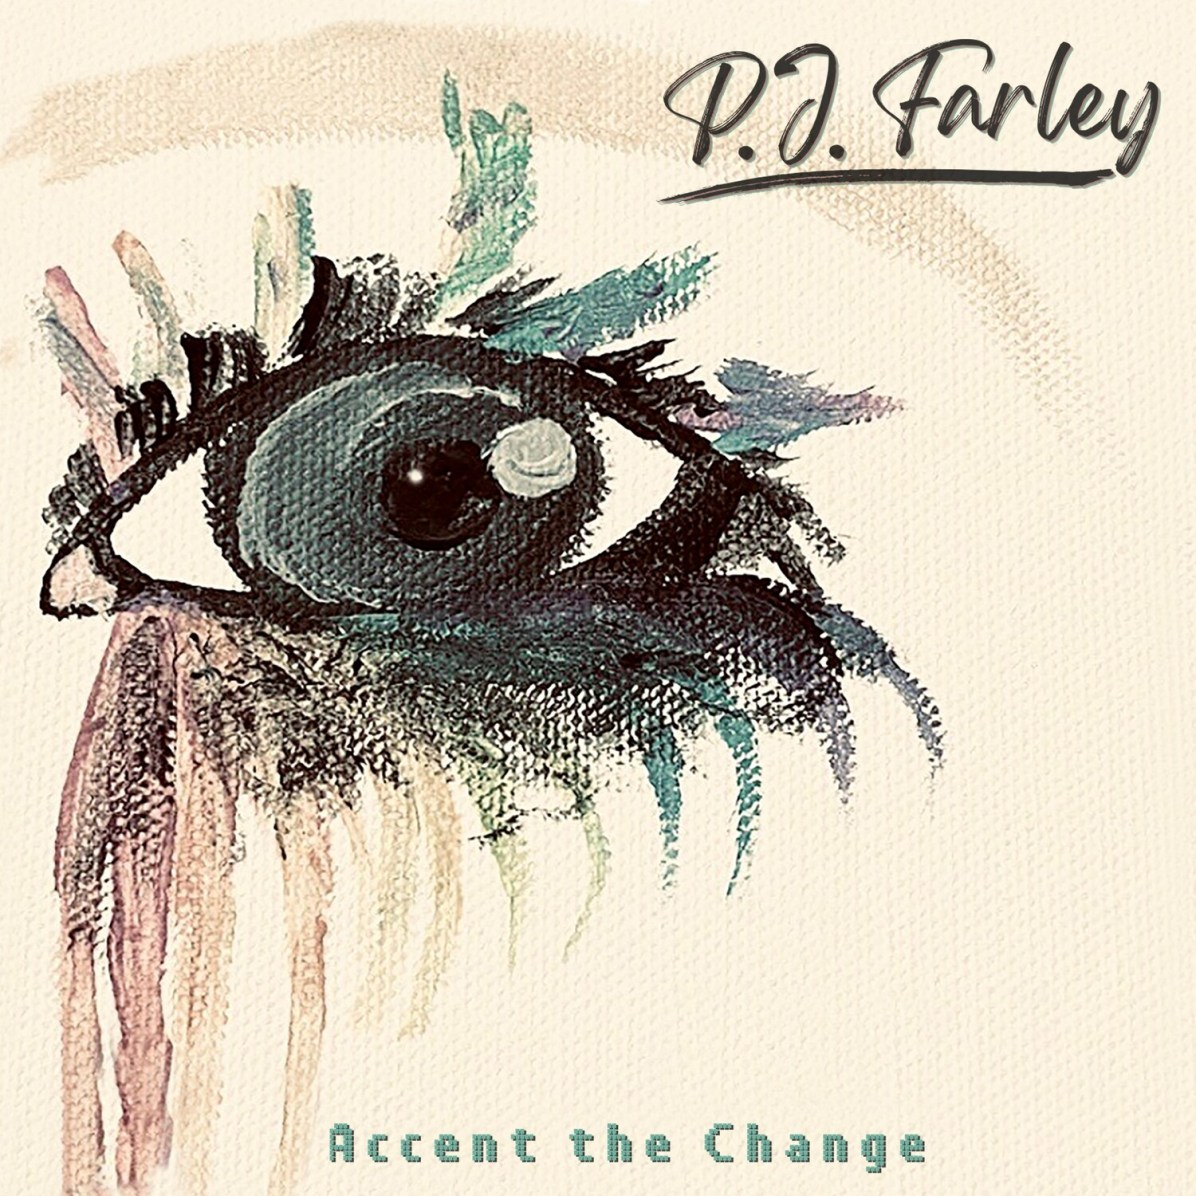 P.J. Farley - Accent the Change